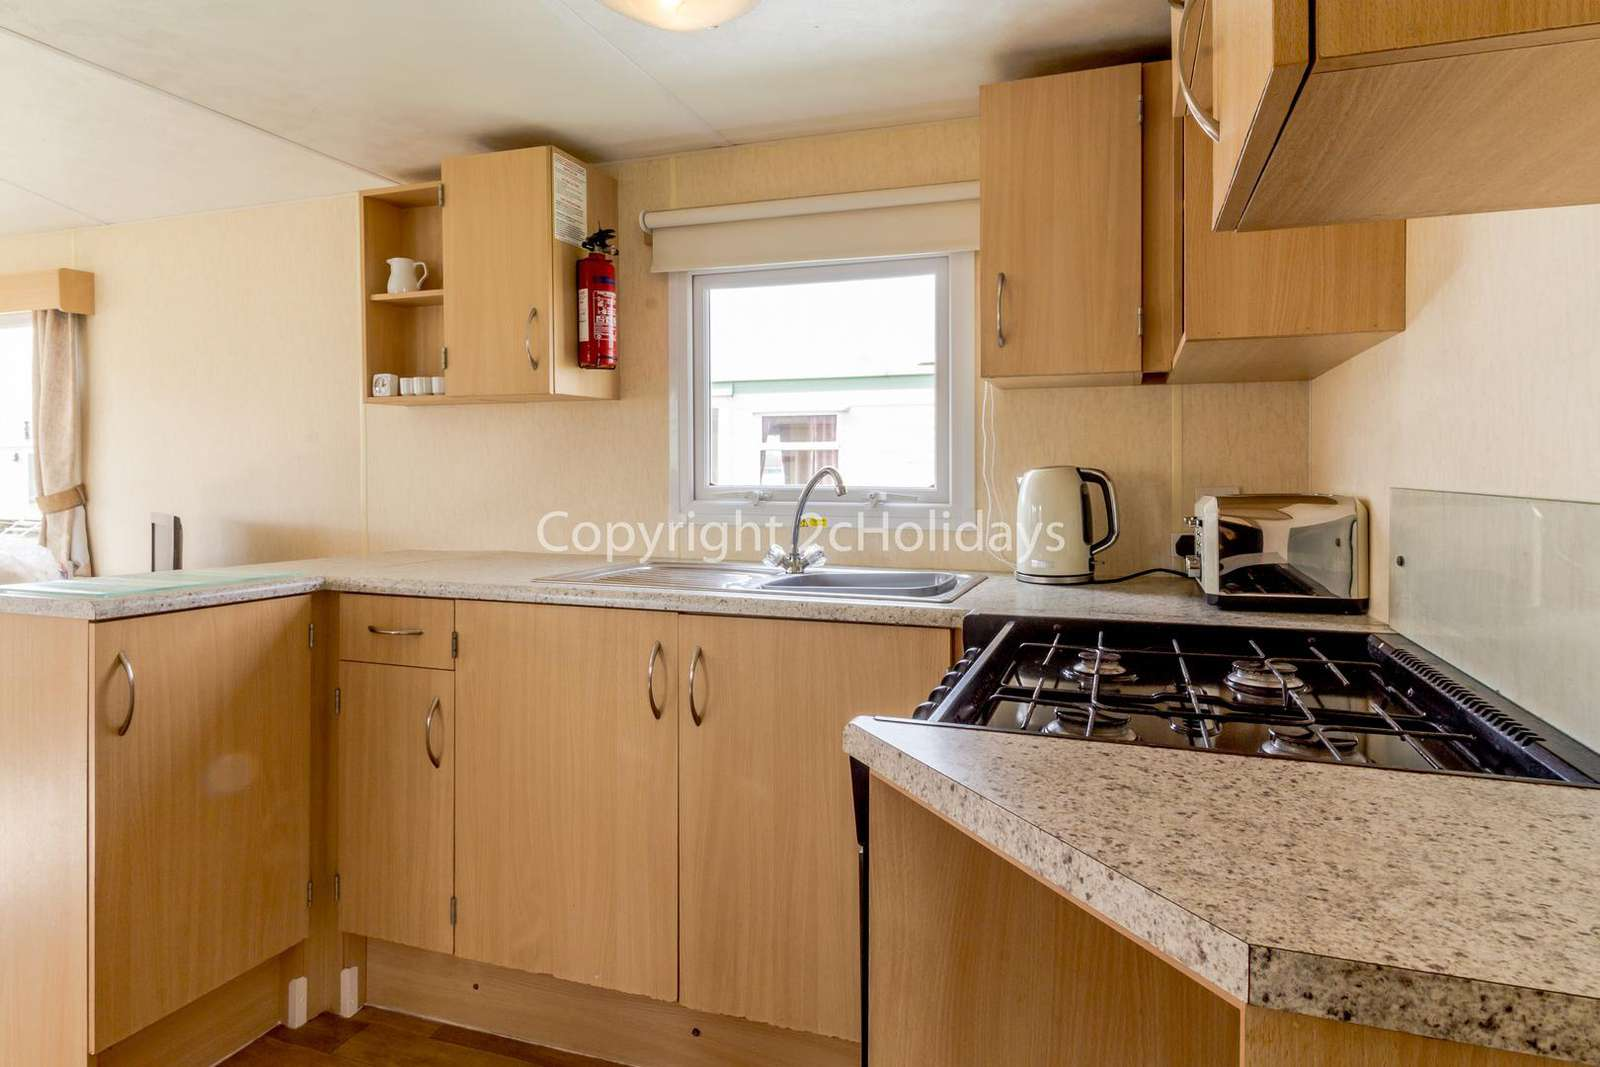 This spacious kitchen includes a full size cooker and fridge/freezer!